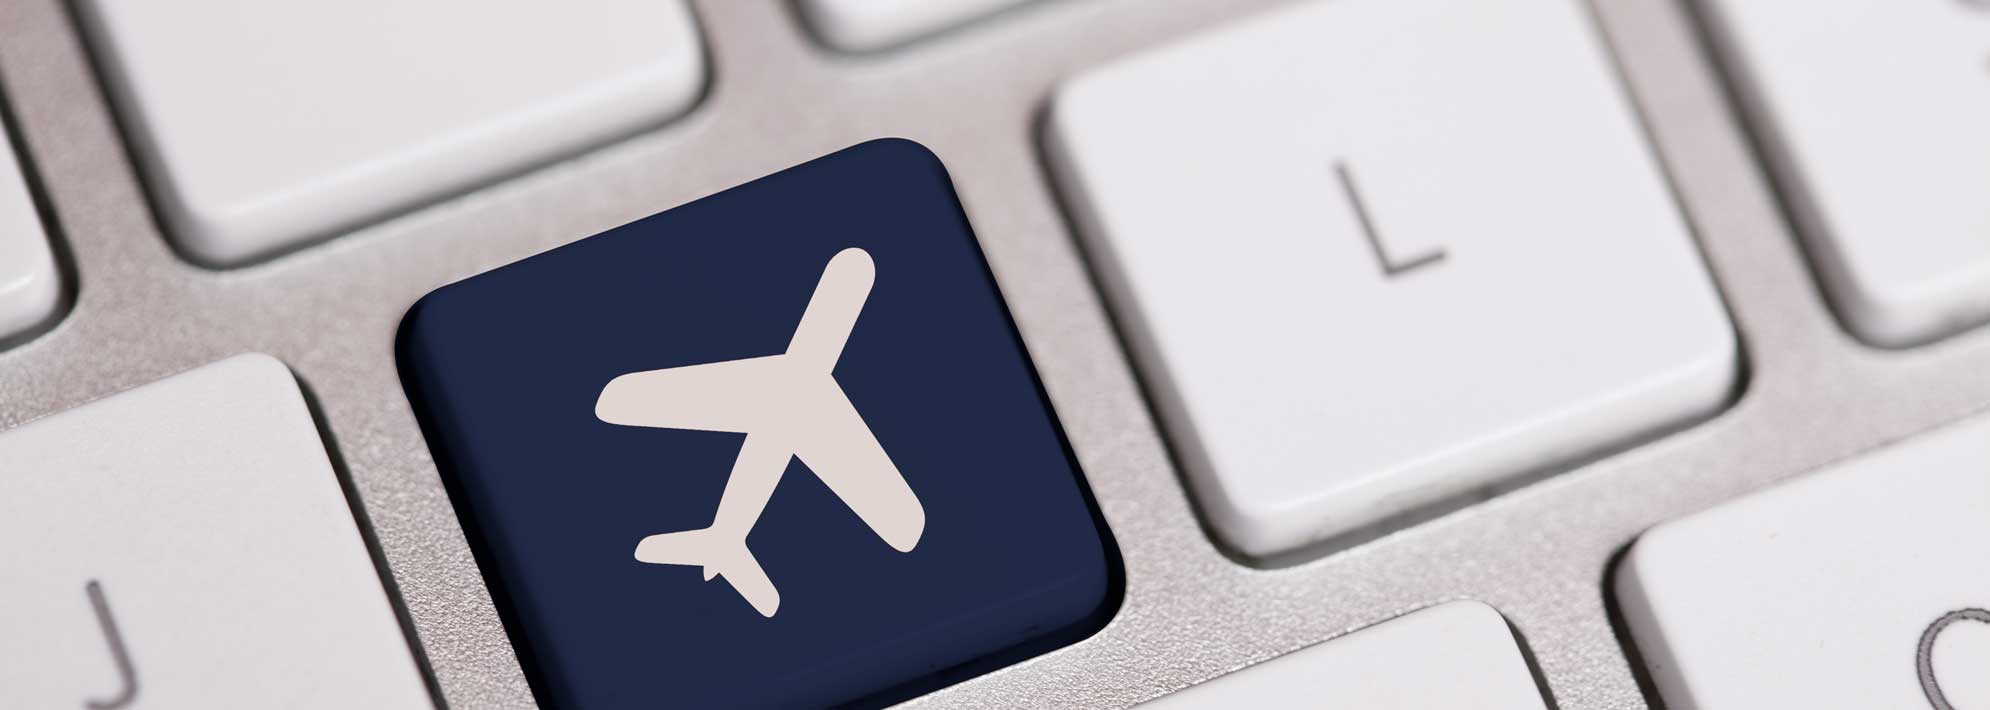 Key technology choices for new airline